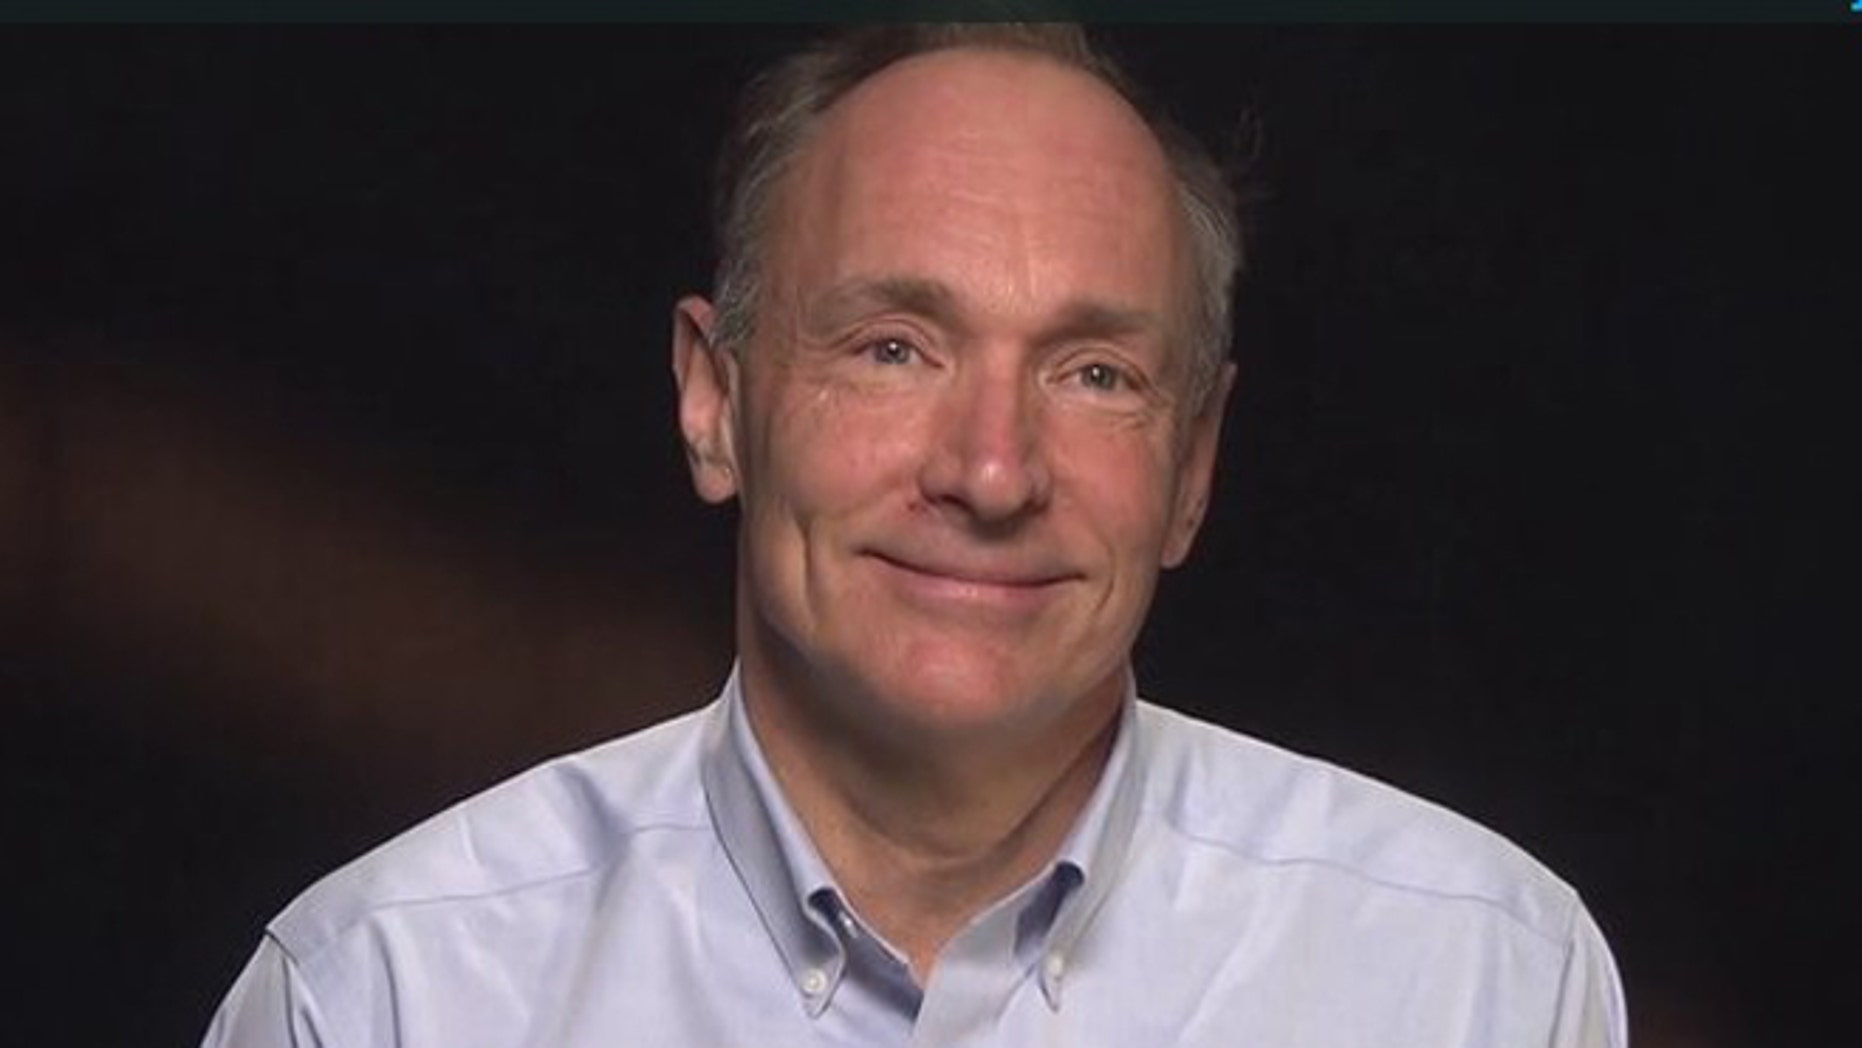 Tim Berners-Lee, the British inventor of the World Wide Web, in a screenshot from a video made on the 25th anniversary of his invention.